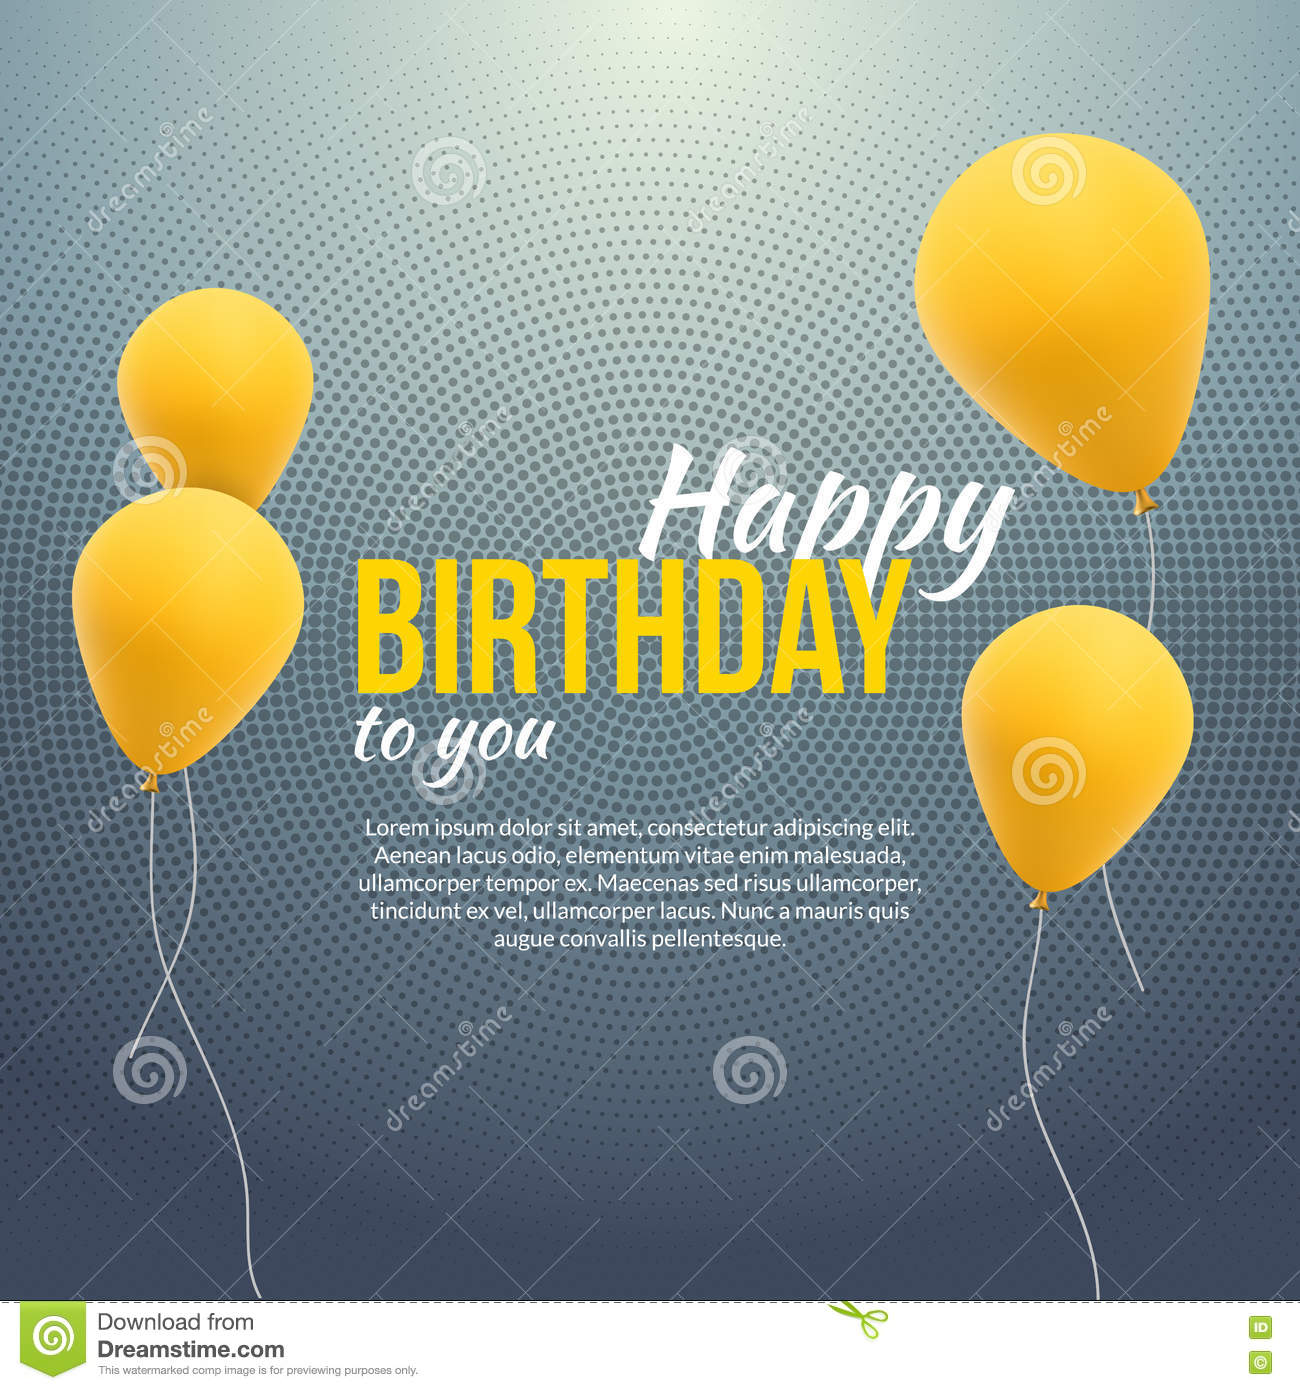 Happy Birthday Poster Background With Yellow Balloons And Text Invitation Template Banner